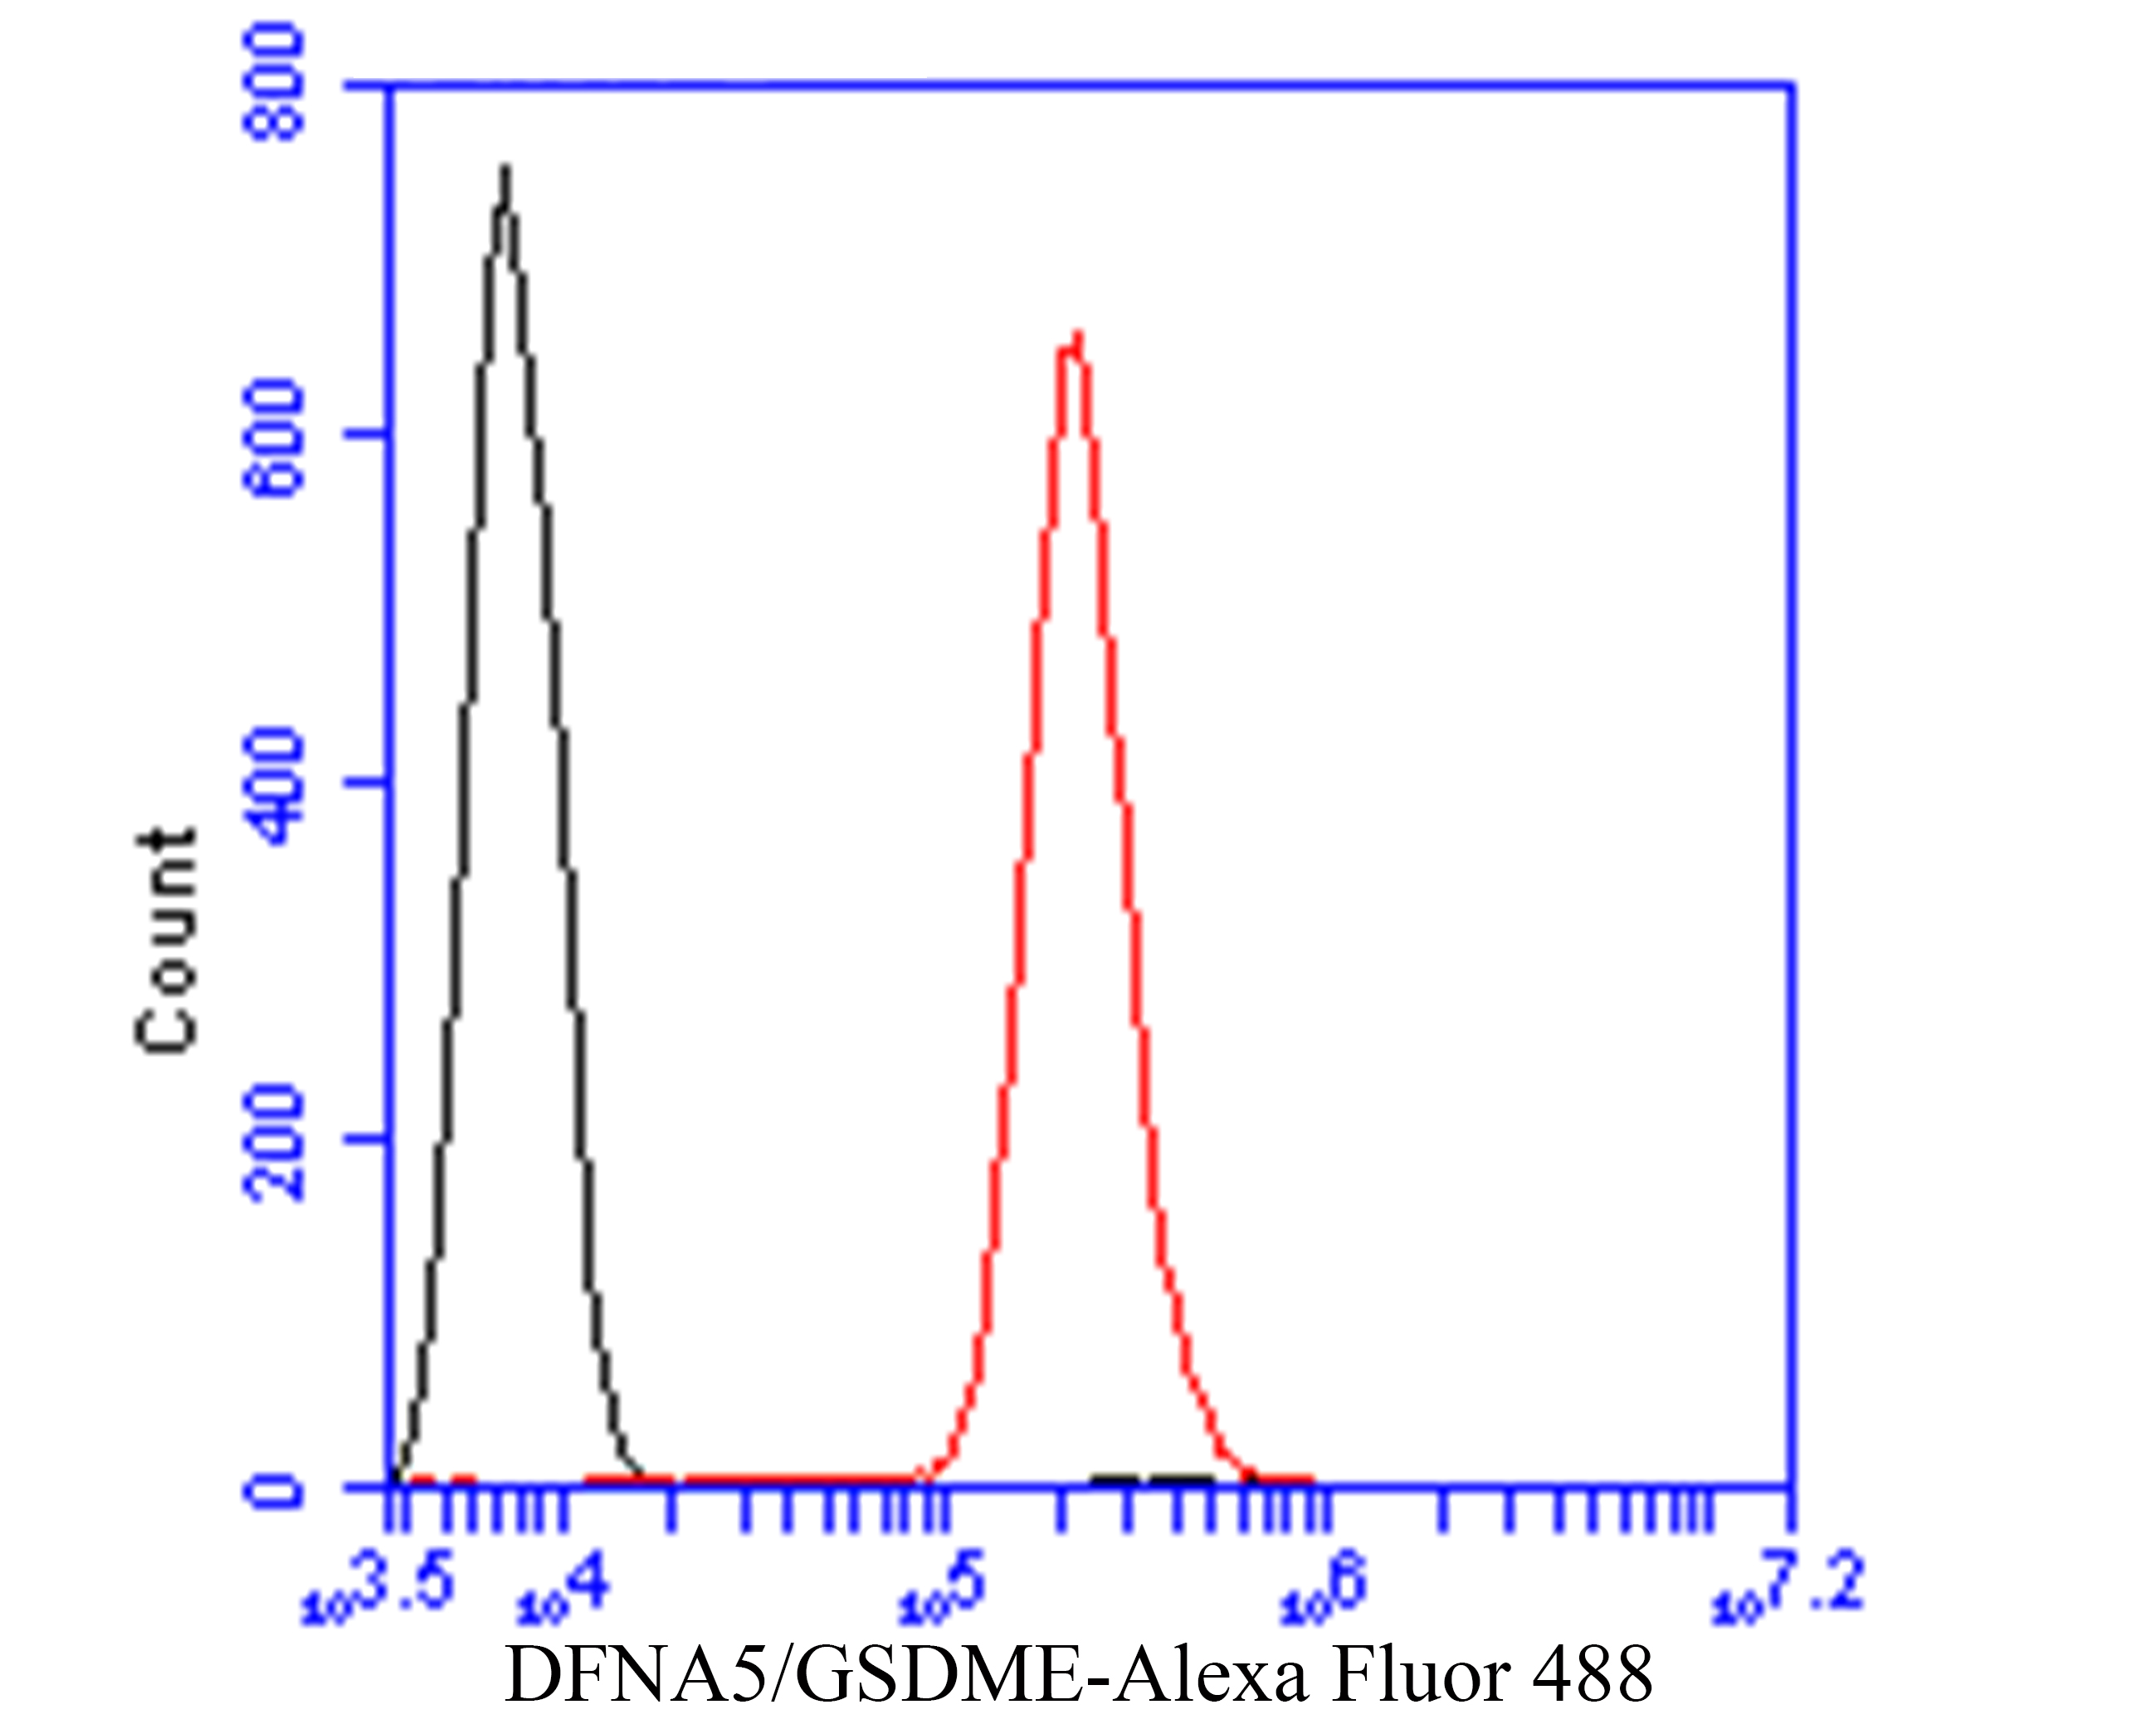 Flow cytometric analysis of DFNA5/GSDME was done on SiHa cells. The cells were fixed, permeabilized and stained with the primary antibody (ER1901-12, 1/50) (red). After incubation of the primary antibody at room temperature for an hour, the cells were stained with a Alexa Fluor 488-conjugated Goat anti-Rabbit IgG Secondary antibody at 1/1000 dilution for 30 minutes.Unlabelled sample was used as a control (cells without incubation with primary antibody; black).